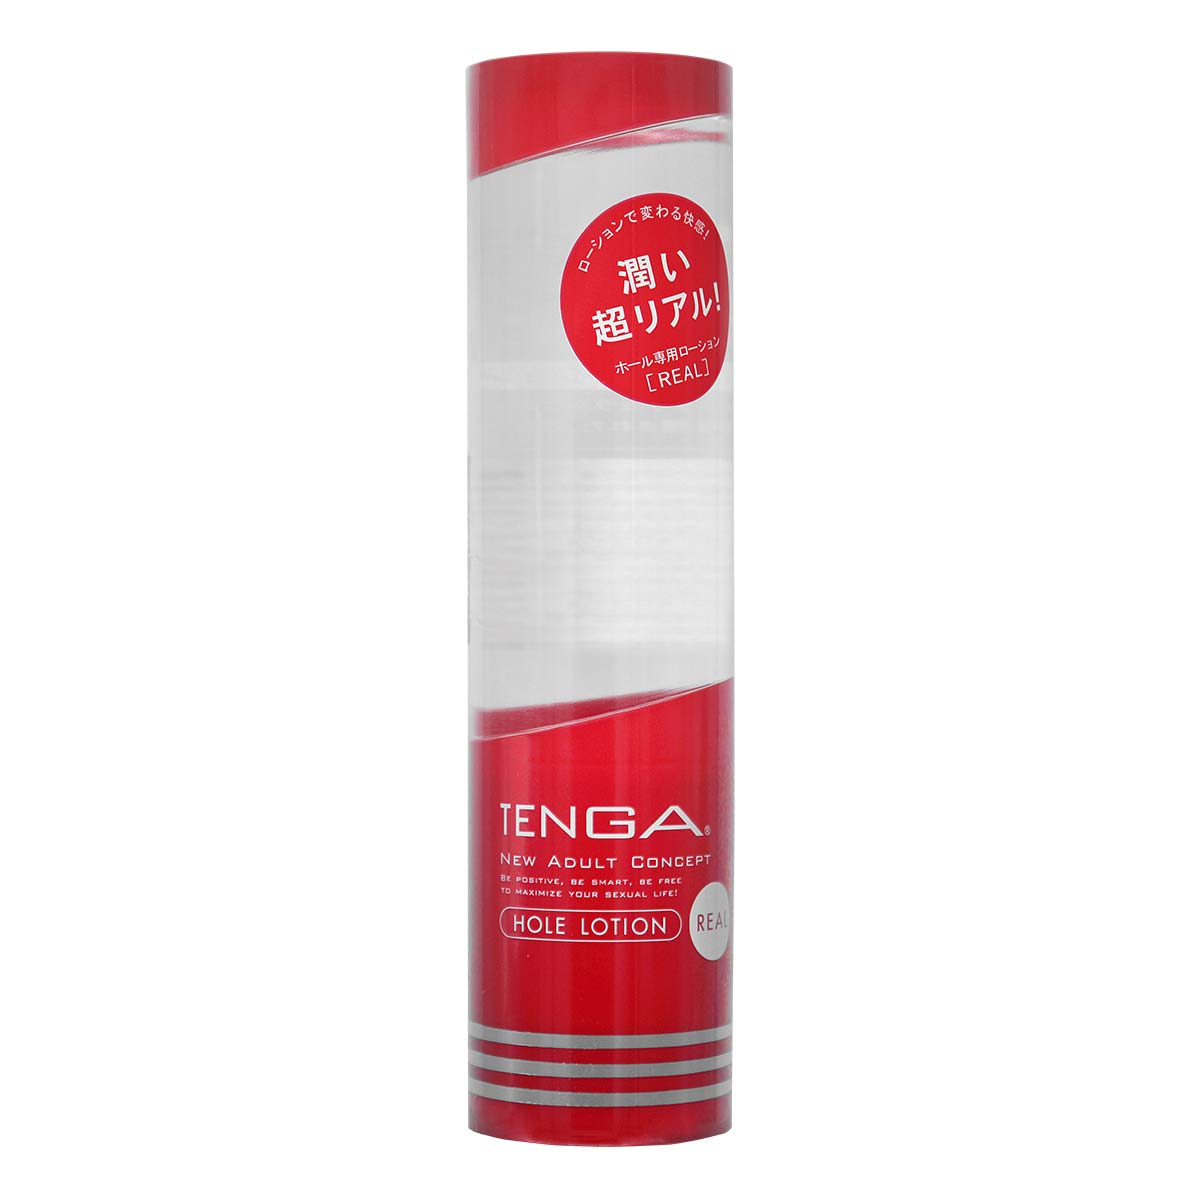 TENGA HOLE LOTION REAL 170ml Water-based Lubricant